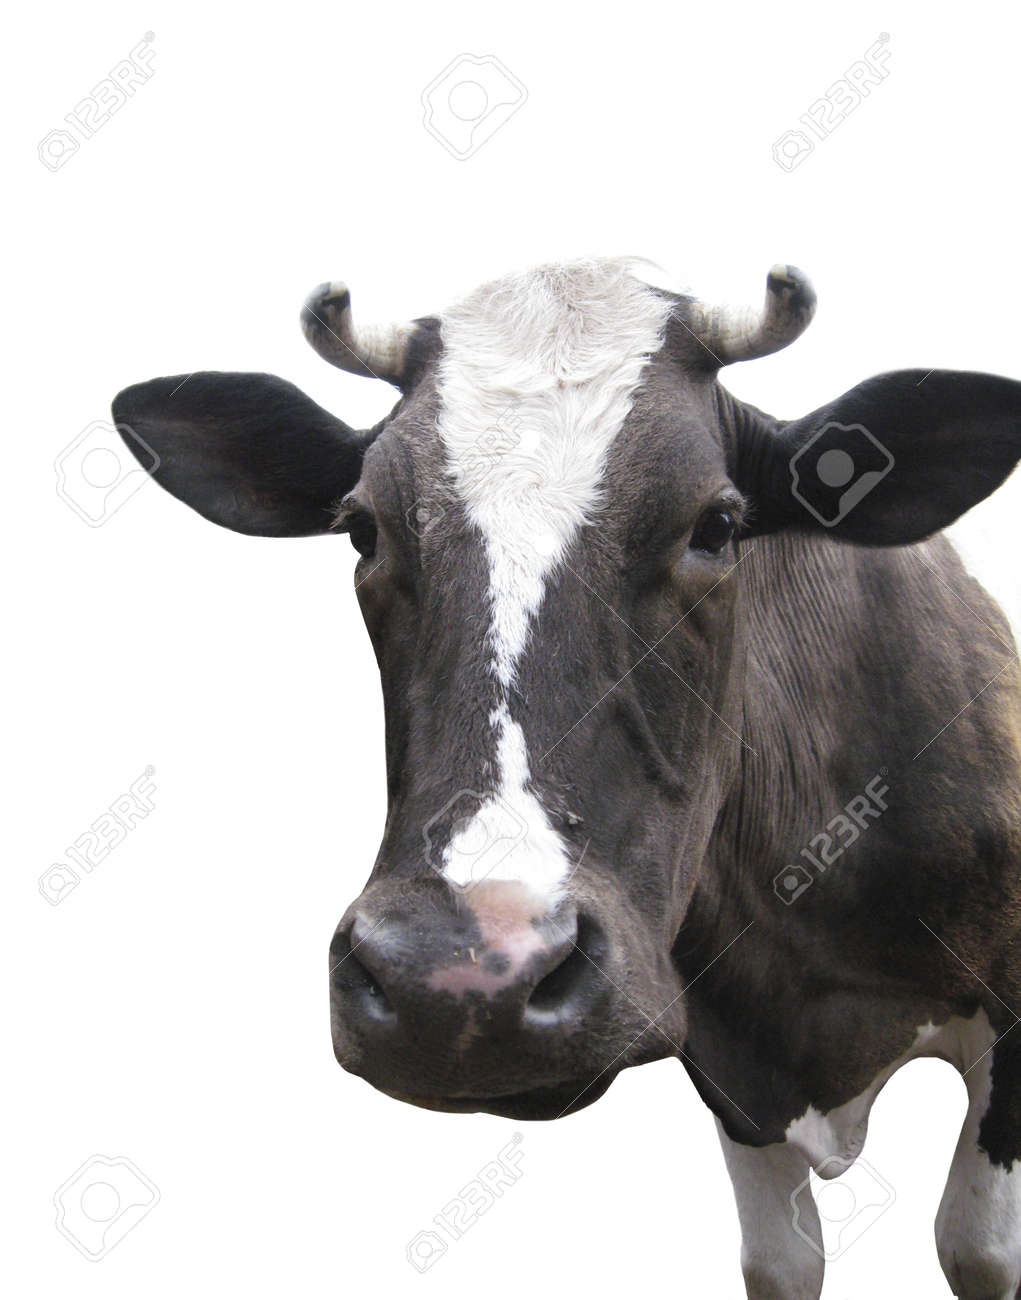 Black-and-white cow on the white background Stock Photo - 12854202